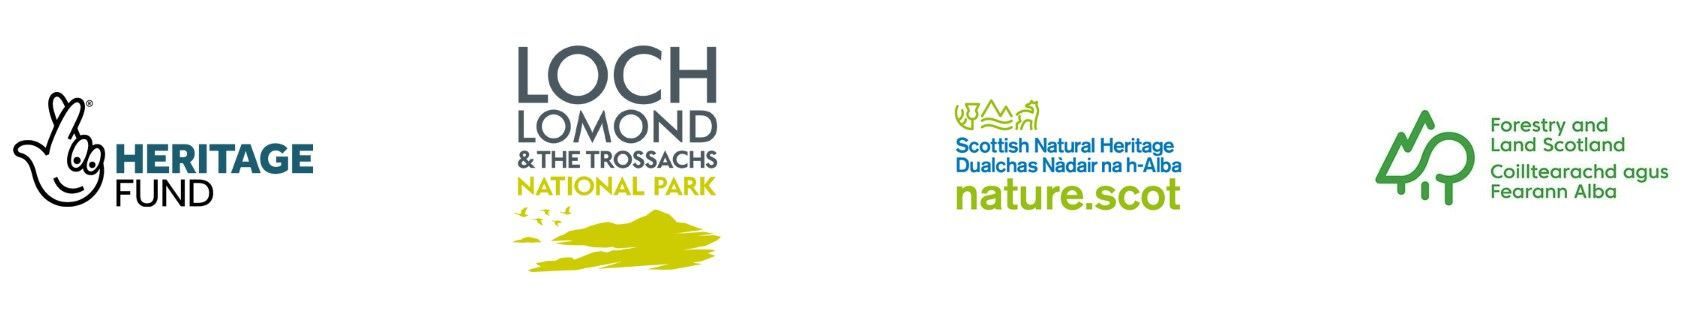 volunteering-and-activities-logos-partners-heritage-fund-loch-lomond-trossachs-national-park-scottish-natural-heritage-forestry-land-scotland